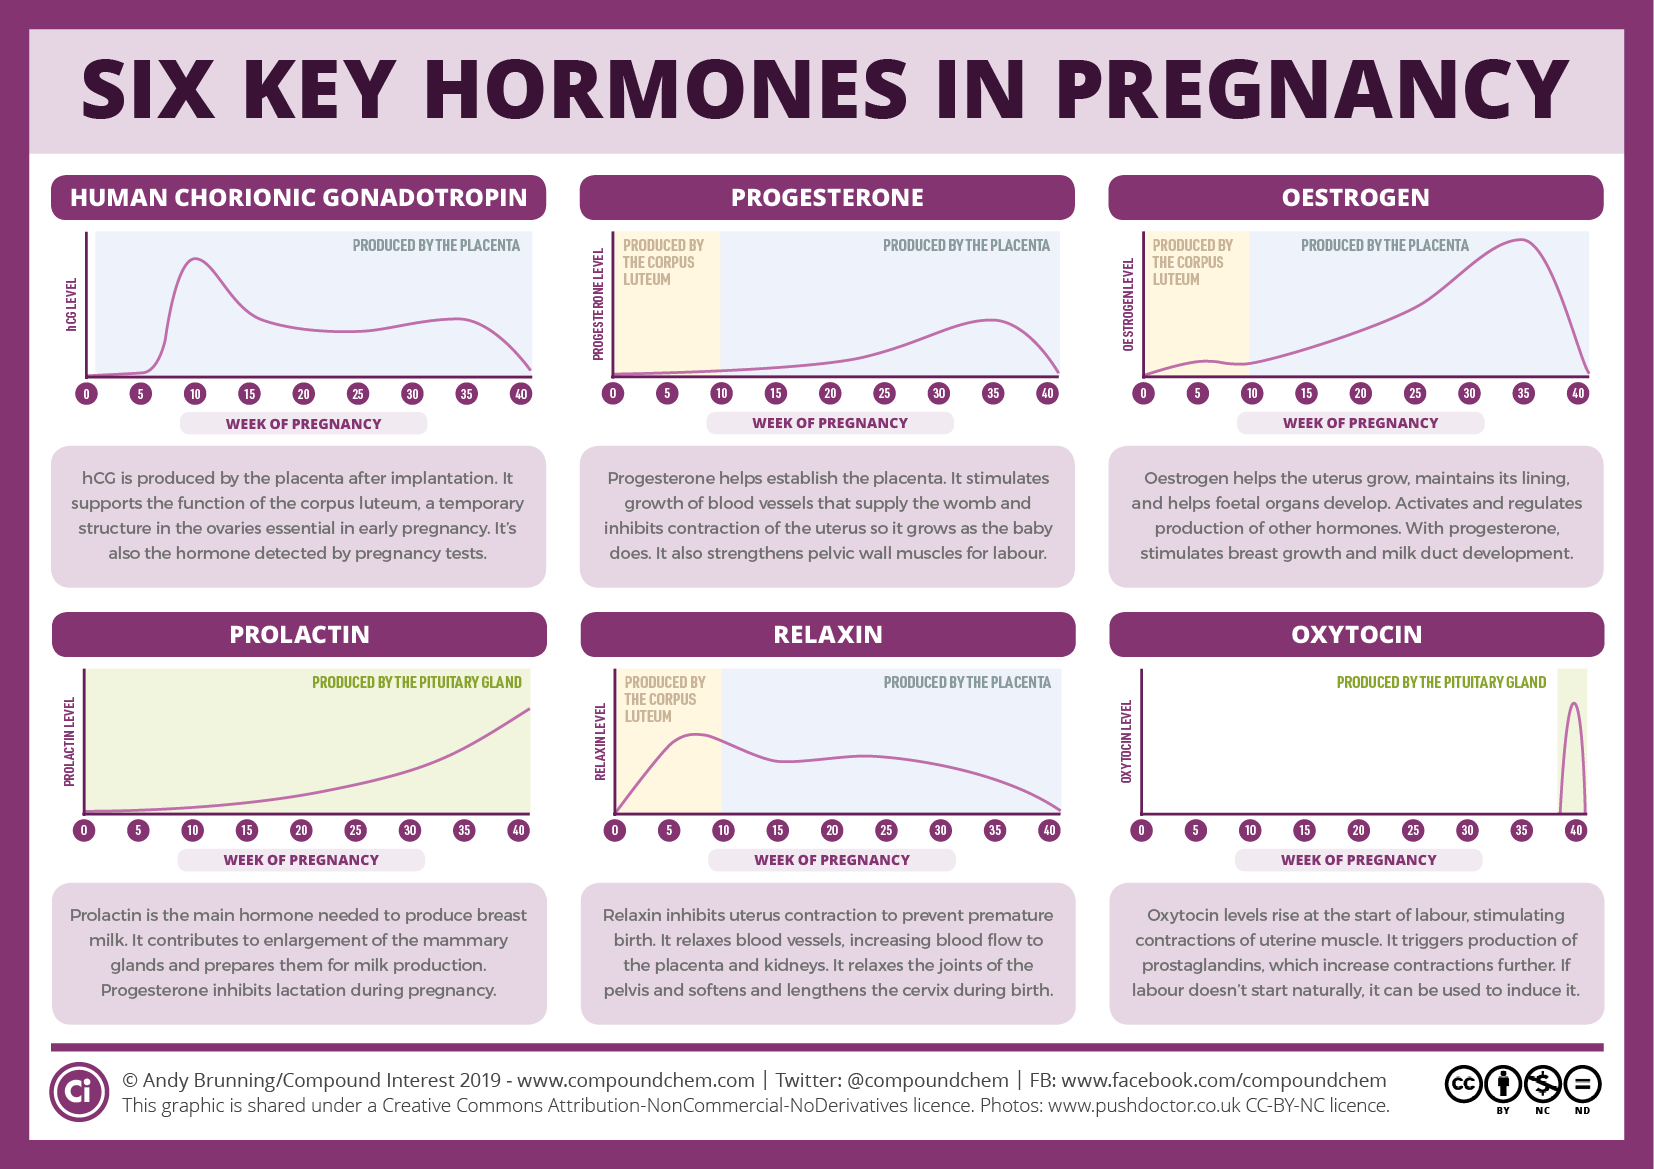 How do pregnancy tests work? | Compound Interest